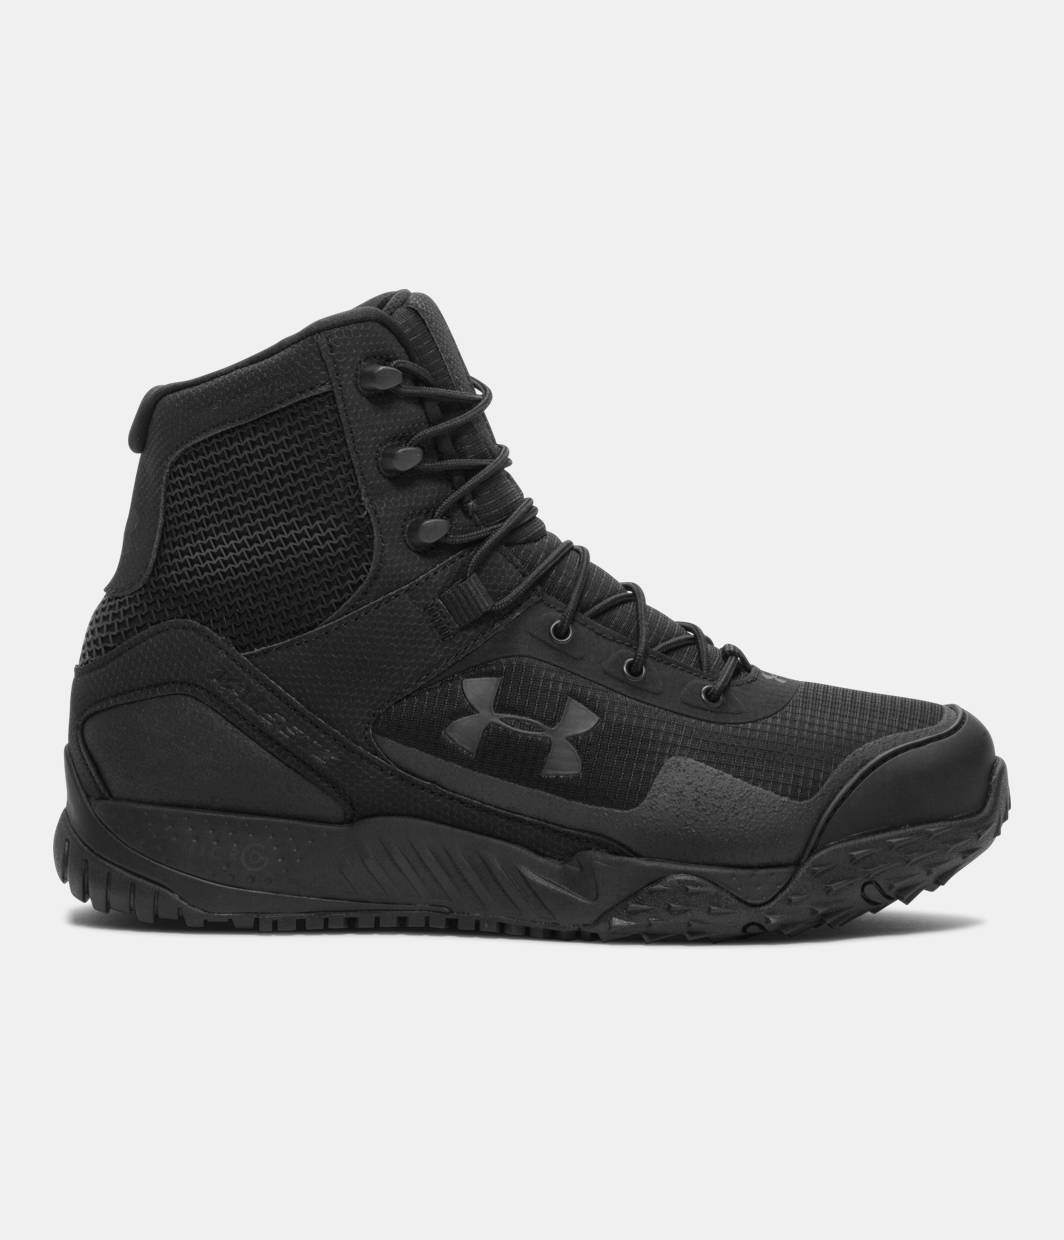 Mens Ua Valsetz RTS Side Zip Low Rise Hiking Shoes Under Armour Rp5MWRCMAD